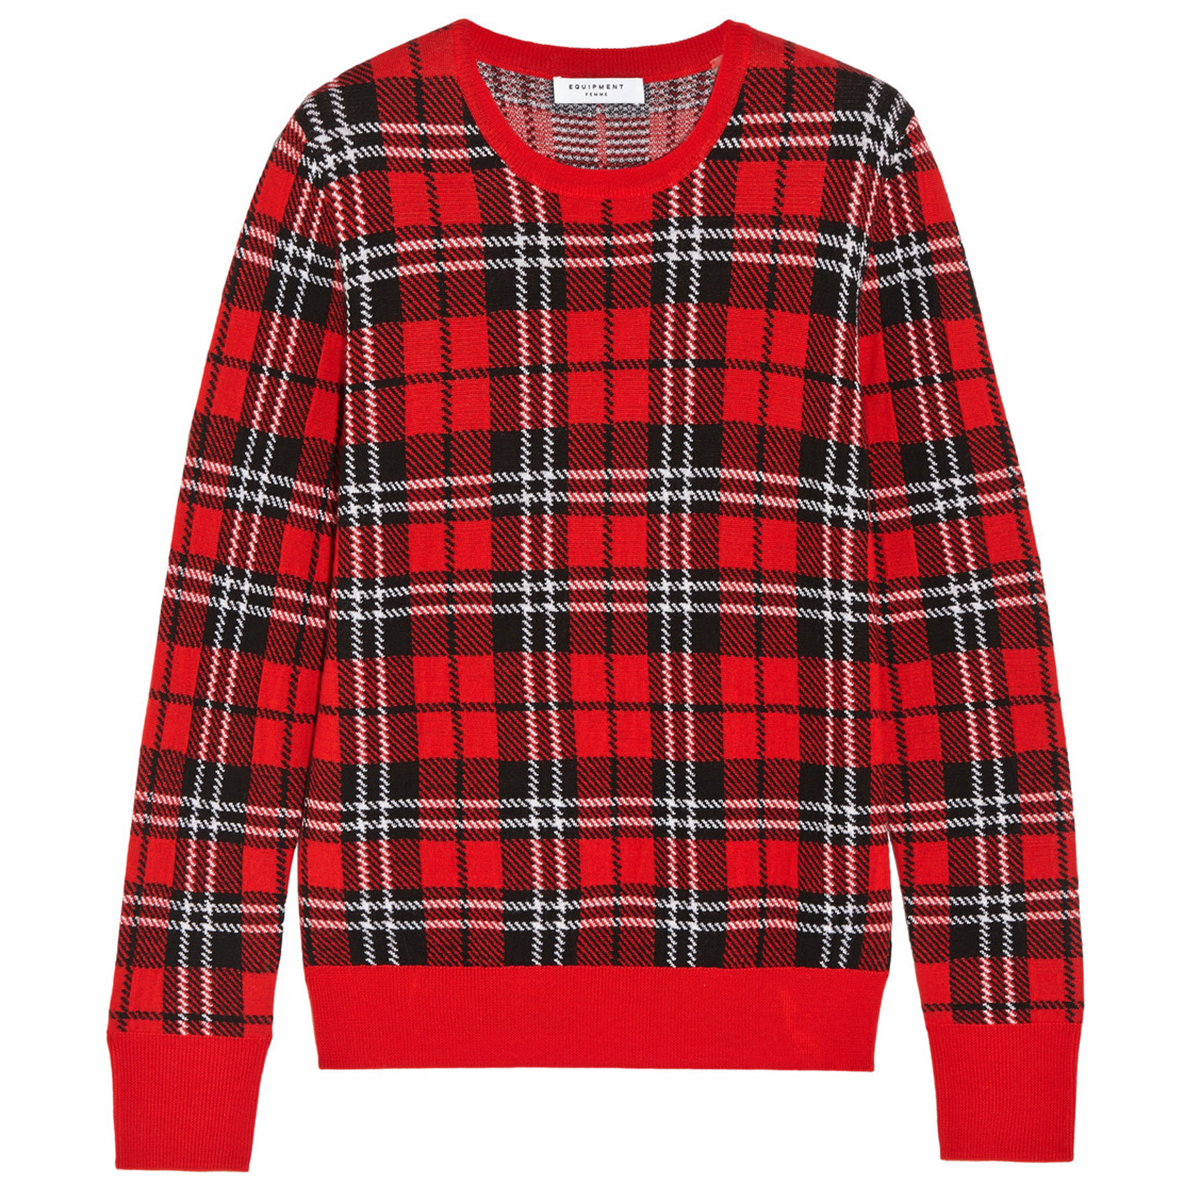 How To Wear The Tartan Fashion Trend Style Advice Good